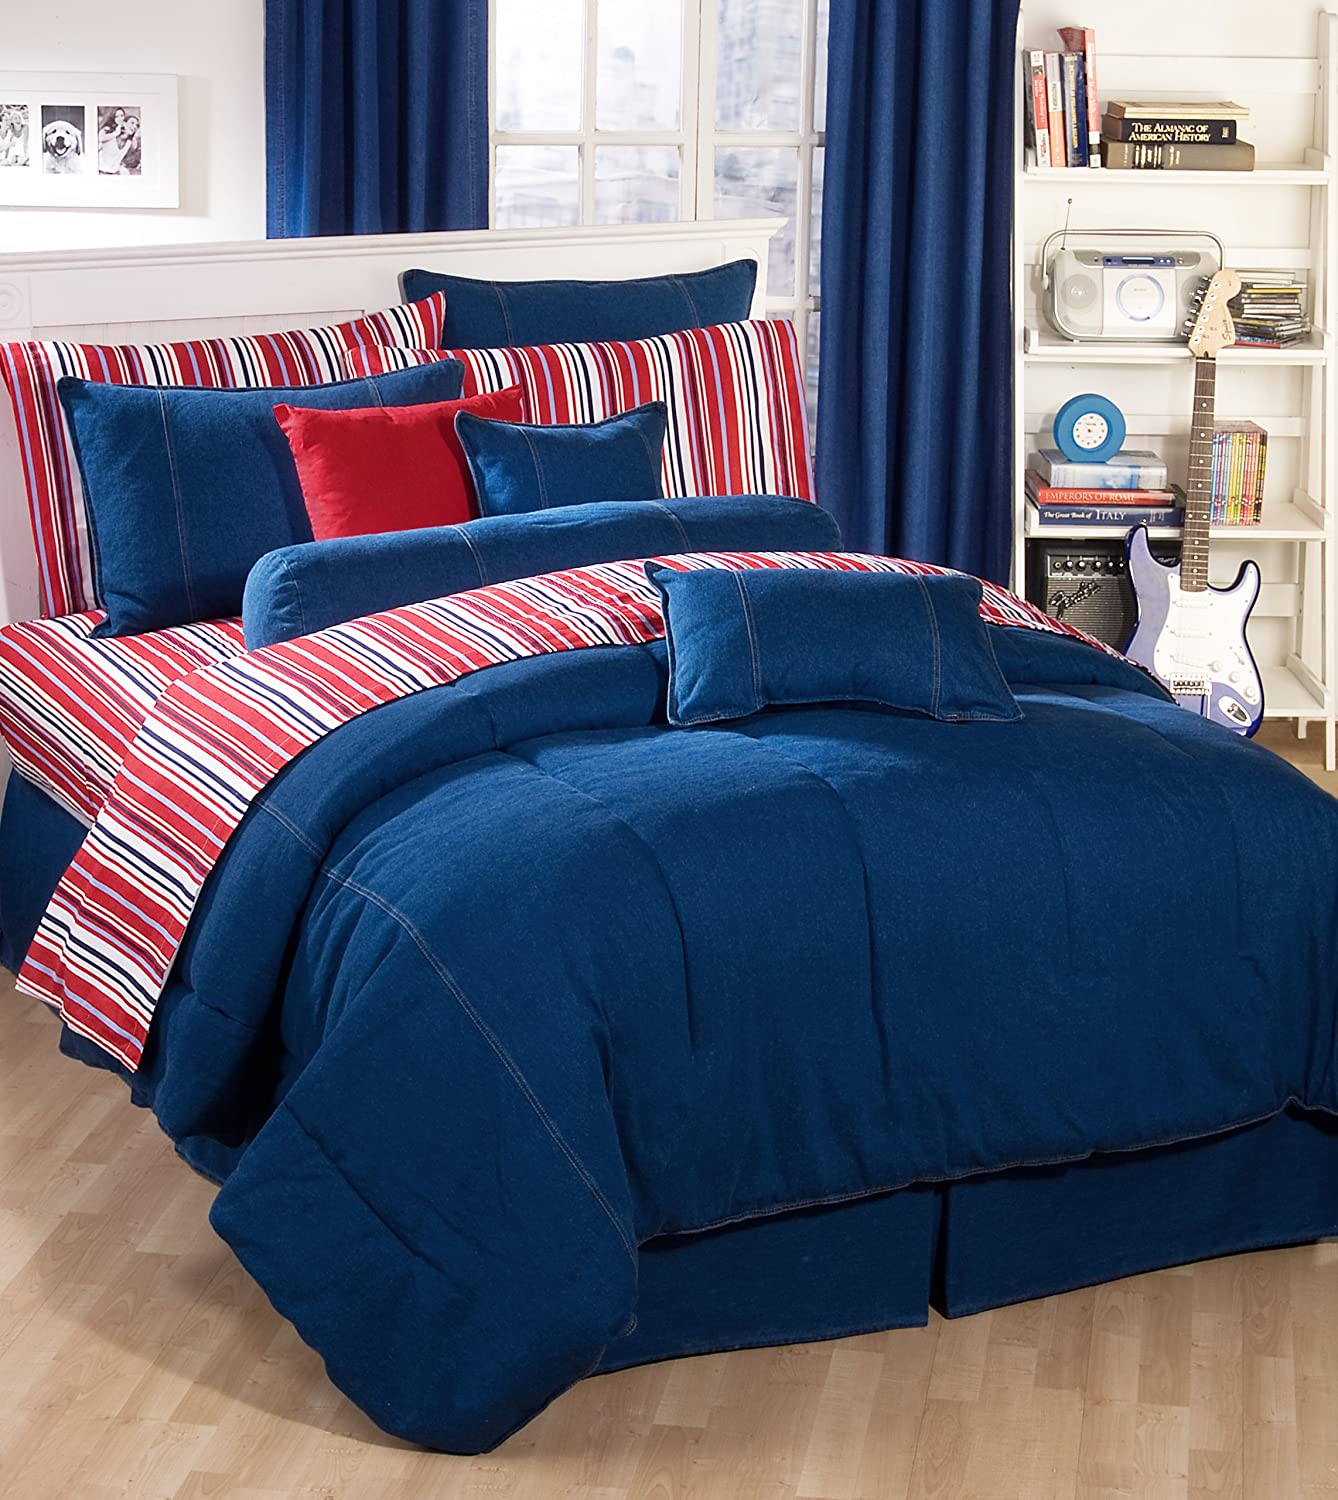 Amazon.com: American Denim Comforter Set, Queen: Home & Kitchen